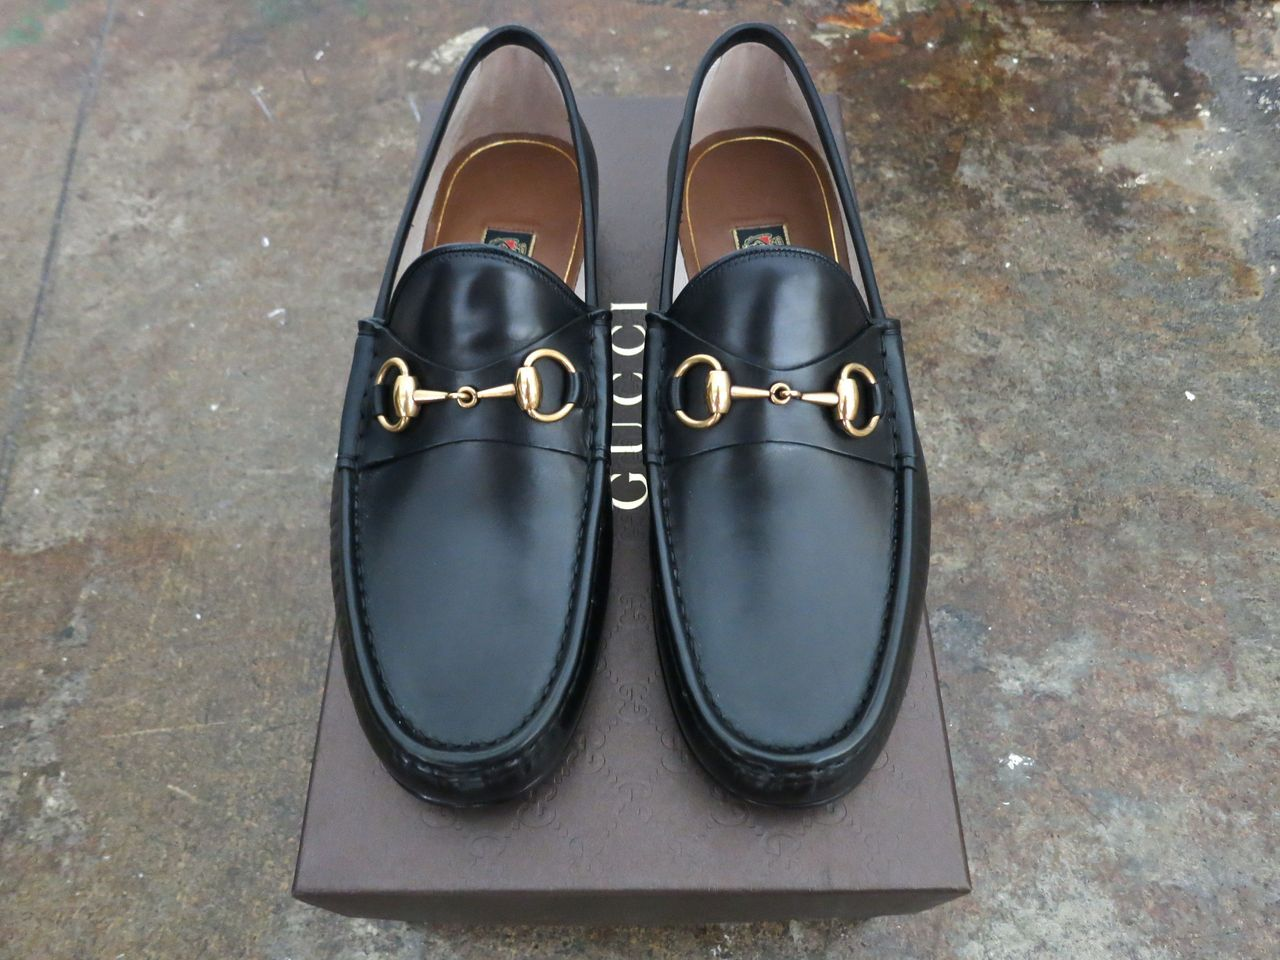 d37baa6f Gucci 1953 Horsebit Loafer in Black Leather | Loafers in 2019 ...